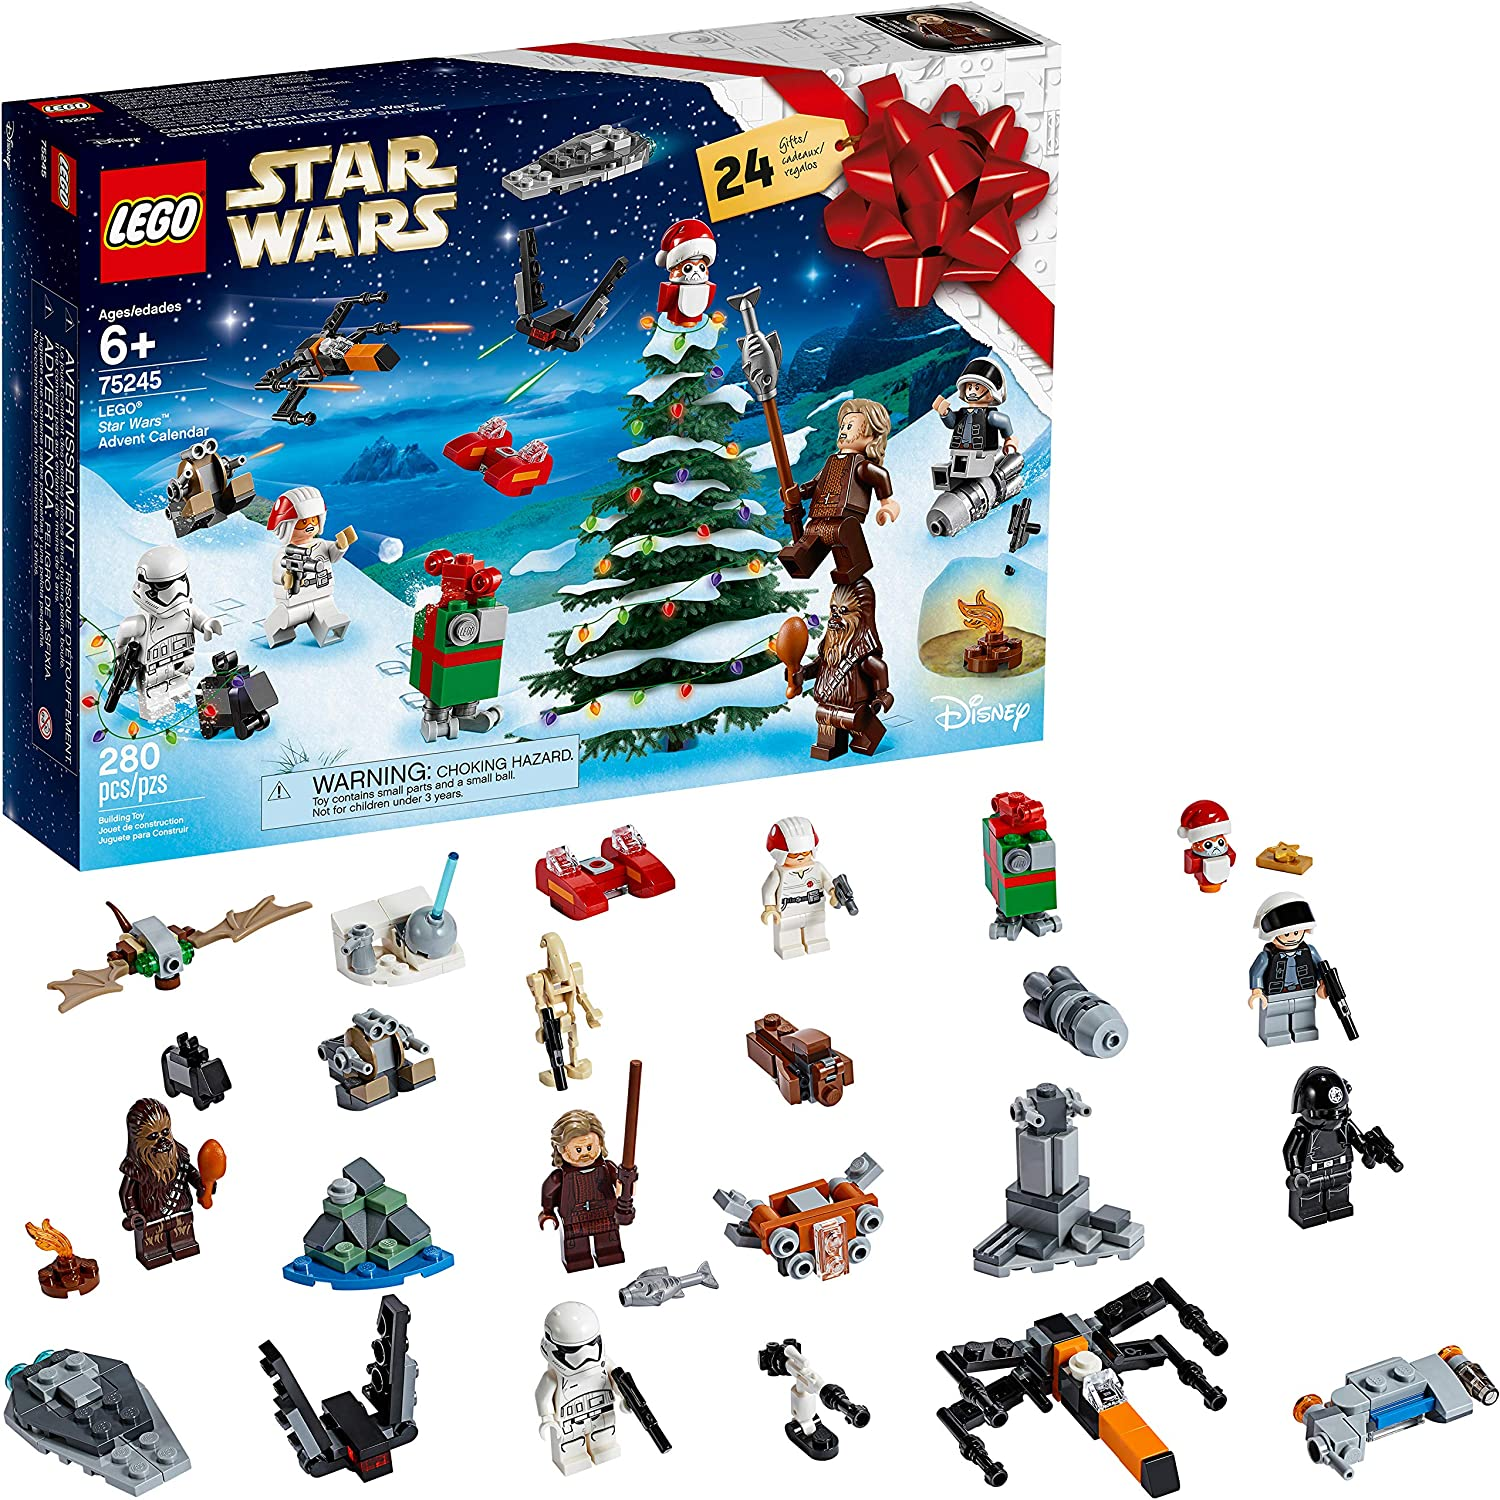 Lego Star Wars 2019 Advent Calendar 75245 Holiday Gift Set Building Kit With Star Wars Minifigure Characters 280 Pieces